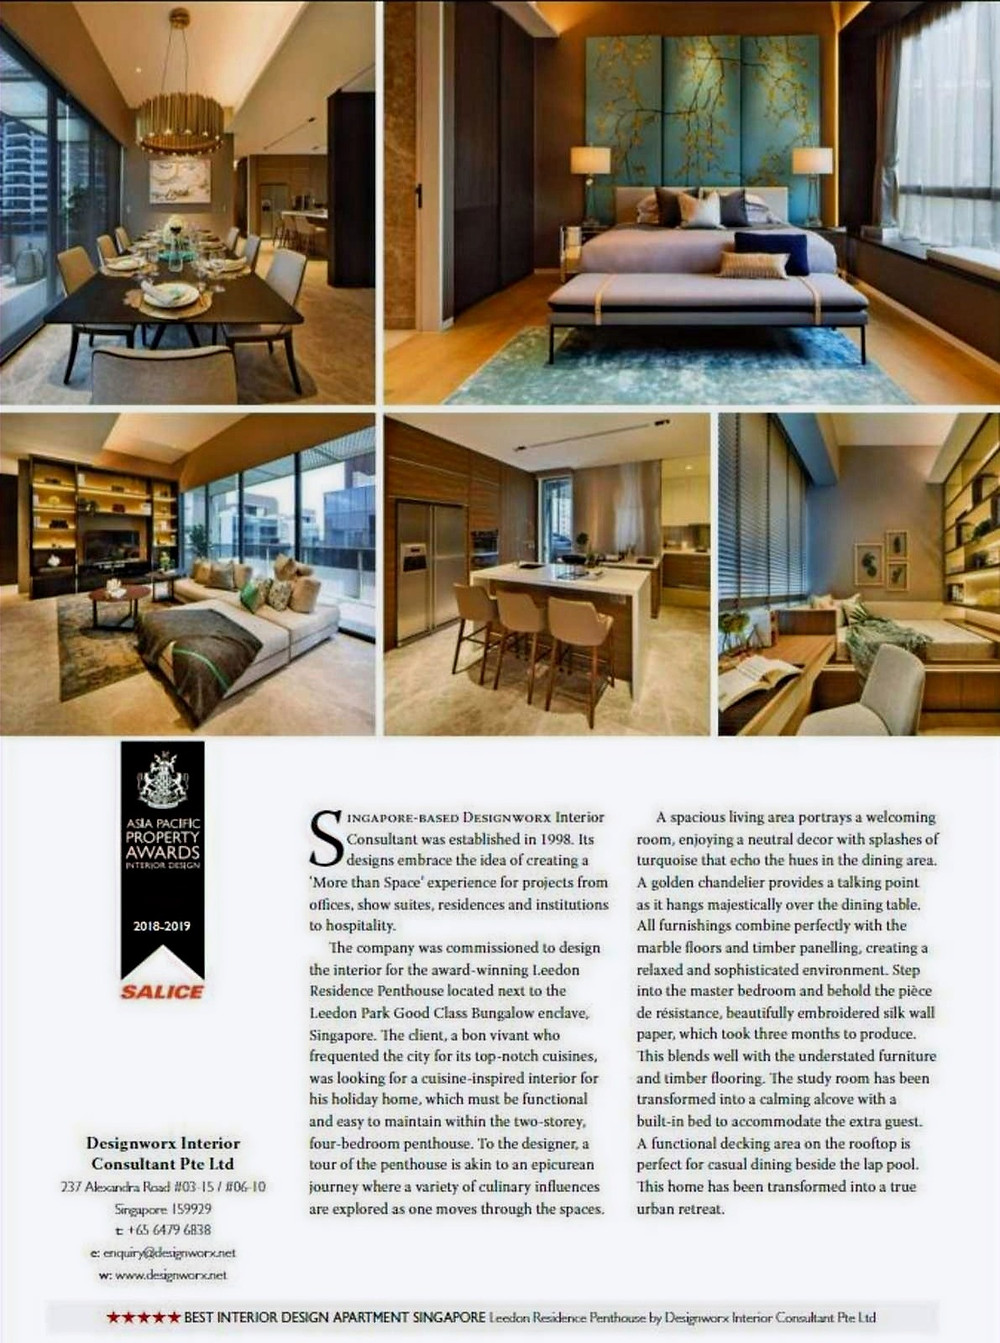 Asia Pacific Property Awards - Best Interior Design Apartment - Leedon Residence Penthouse - Designworx Interior Consultant